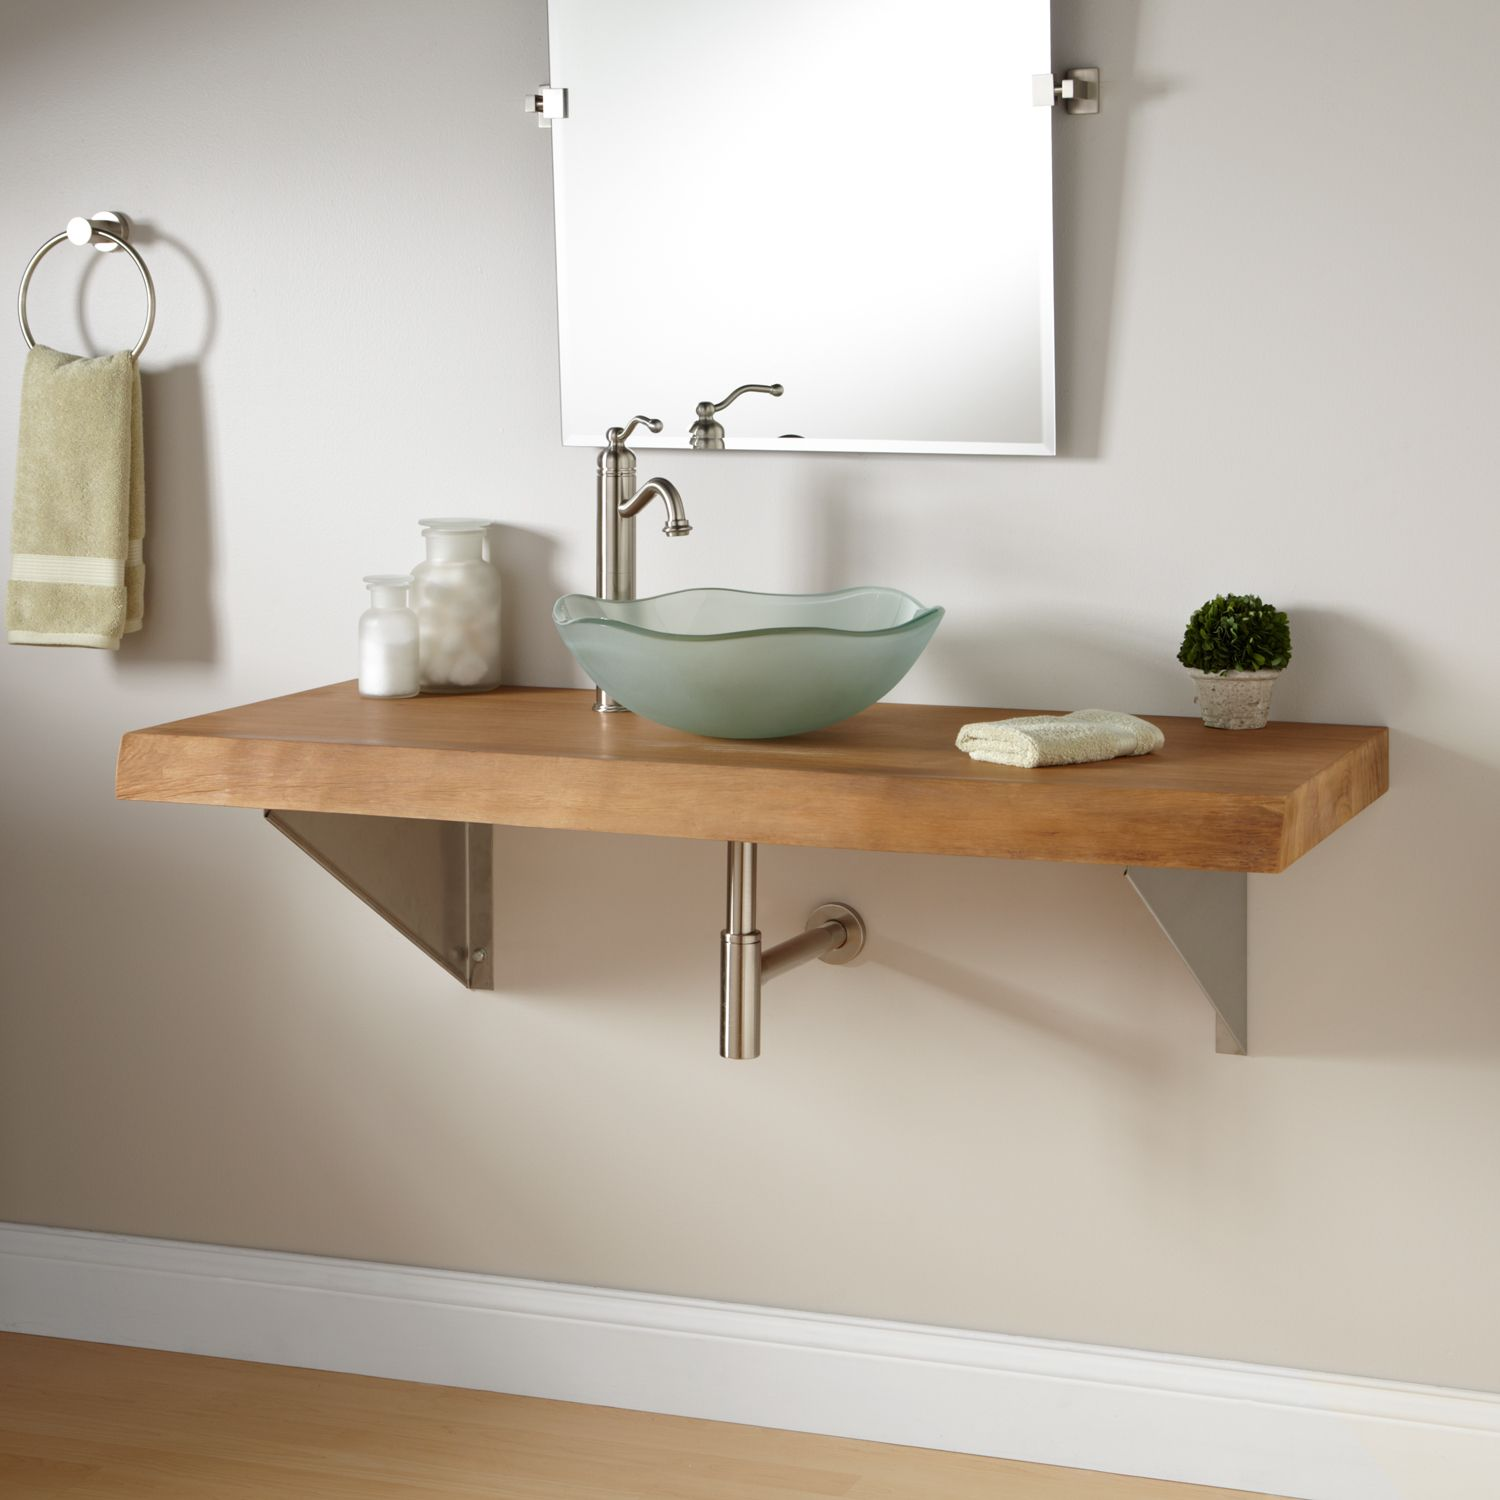 Picture Gallery For Website  Natural Edge Teak Wall Mount Vanity for Vessel Sink